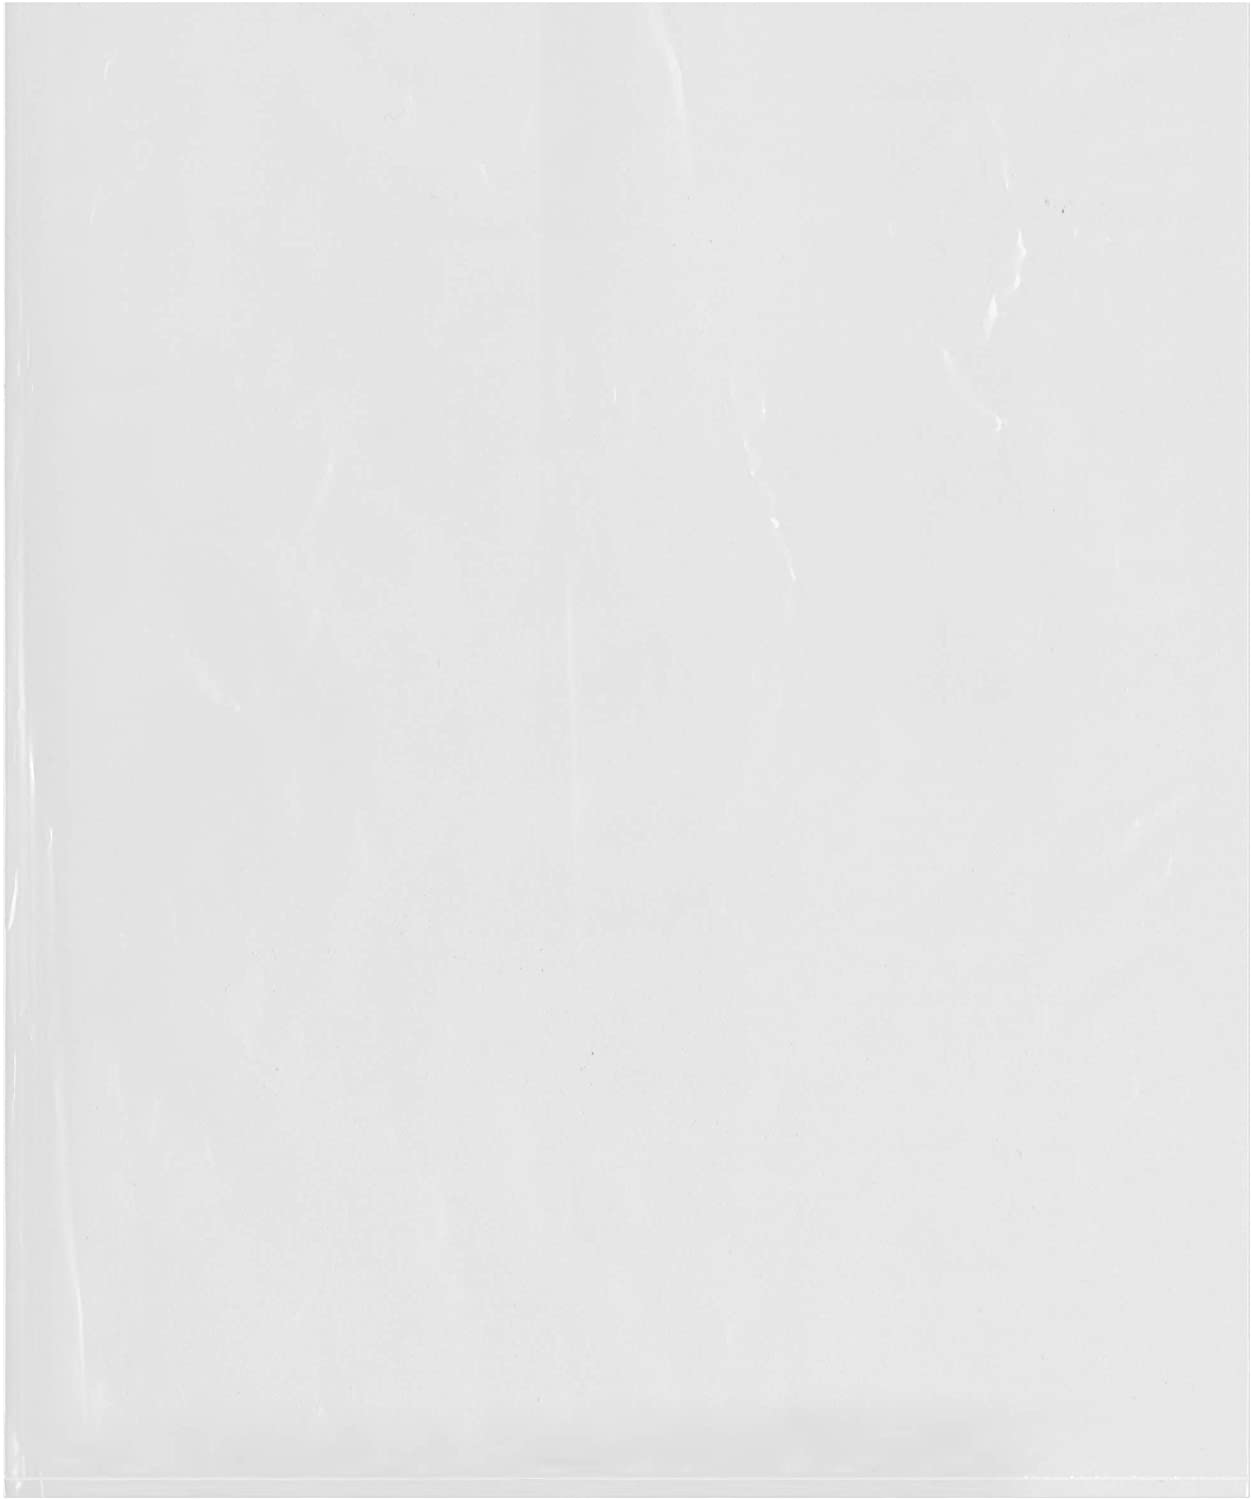 Plymor Flat Open Clear Plastic Poly Bags, 2 Mil, 15